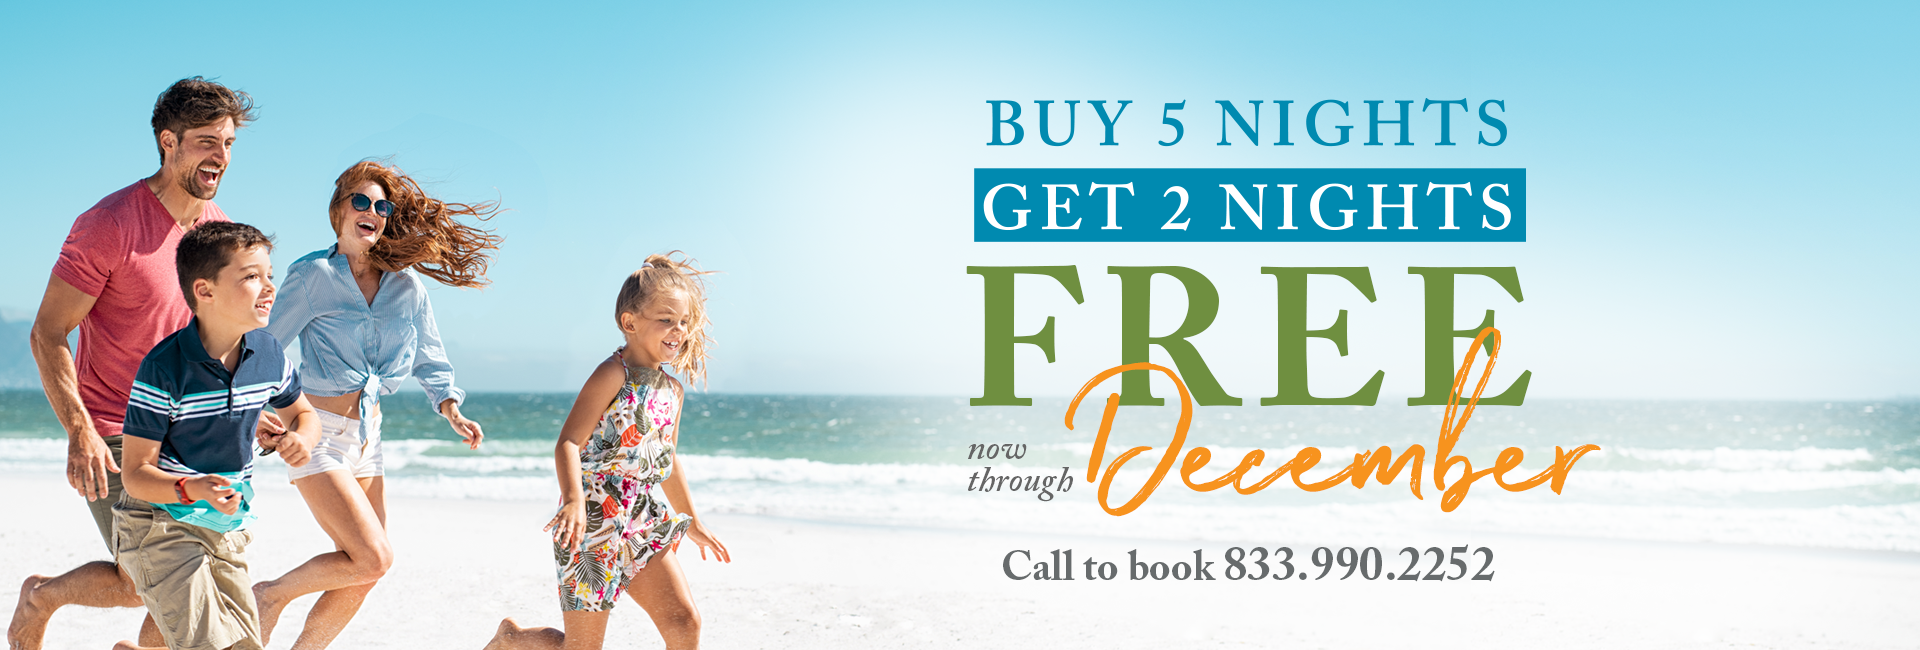 Empty Beach chairs on the gulf - Now accepting reservations for stays beginning today - buy 5 nights get 2 free in through December